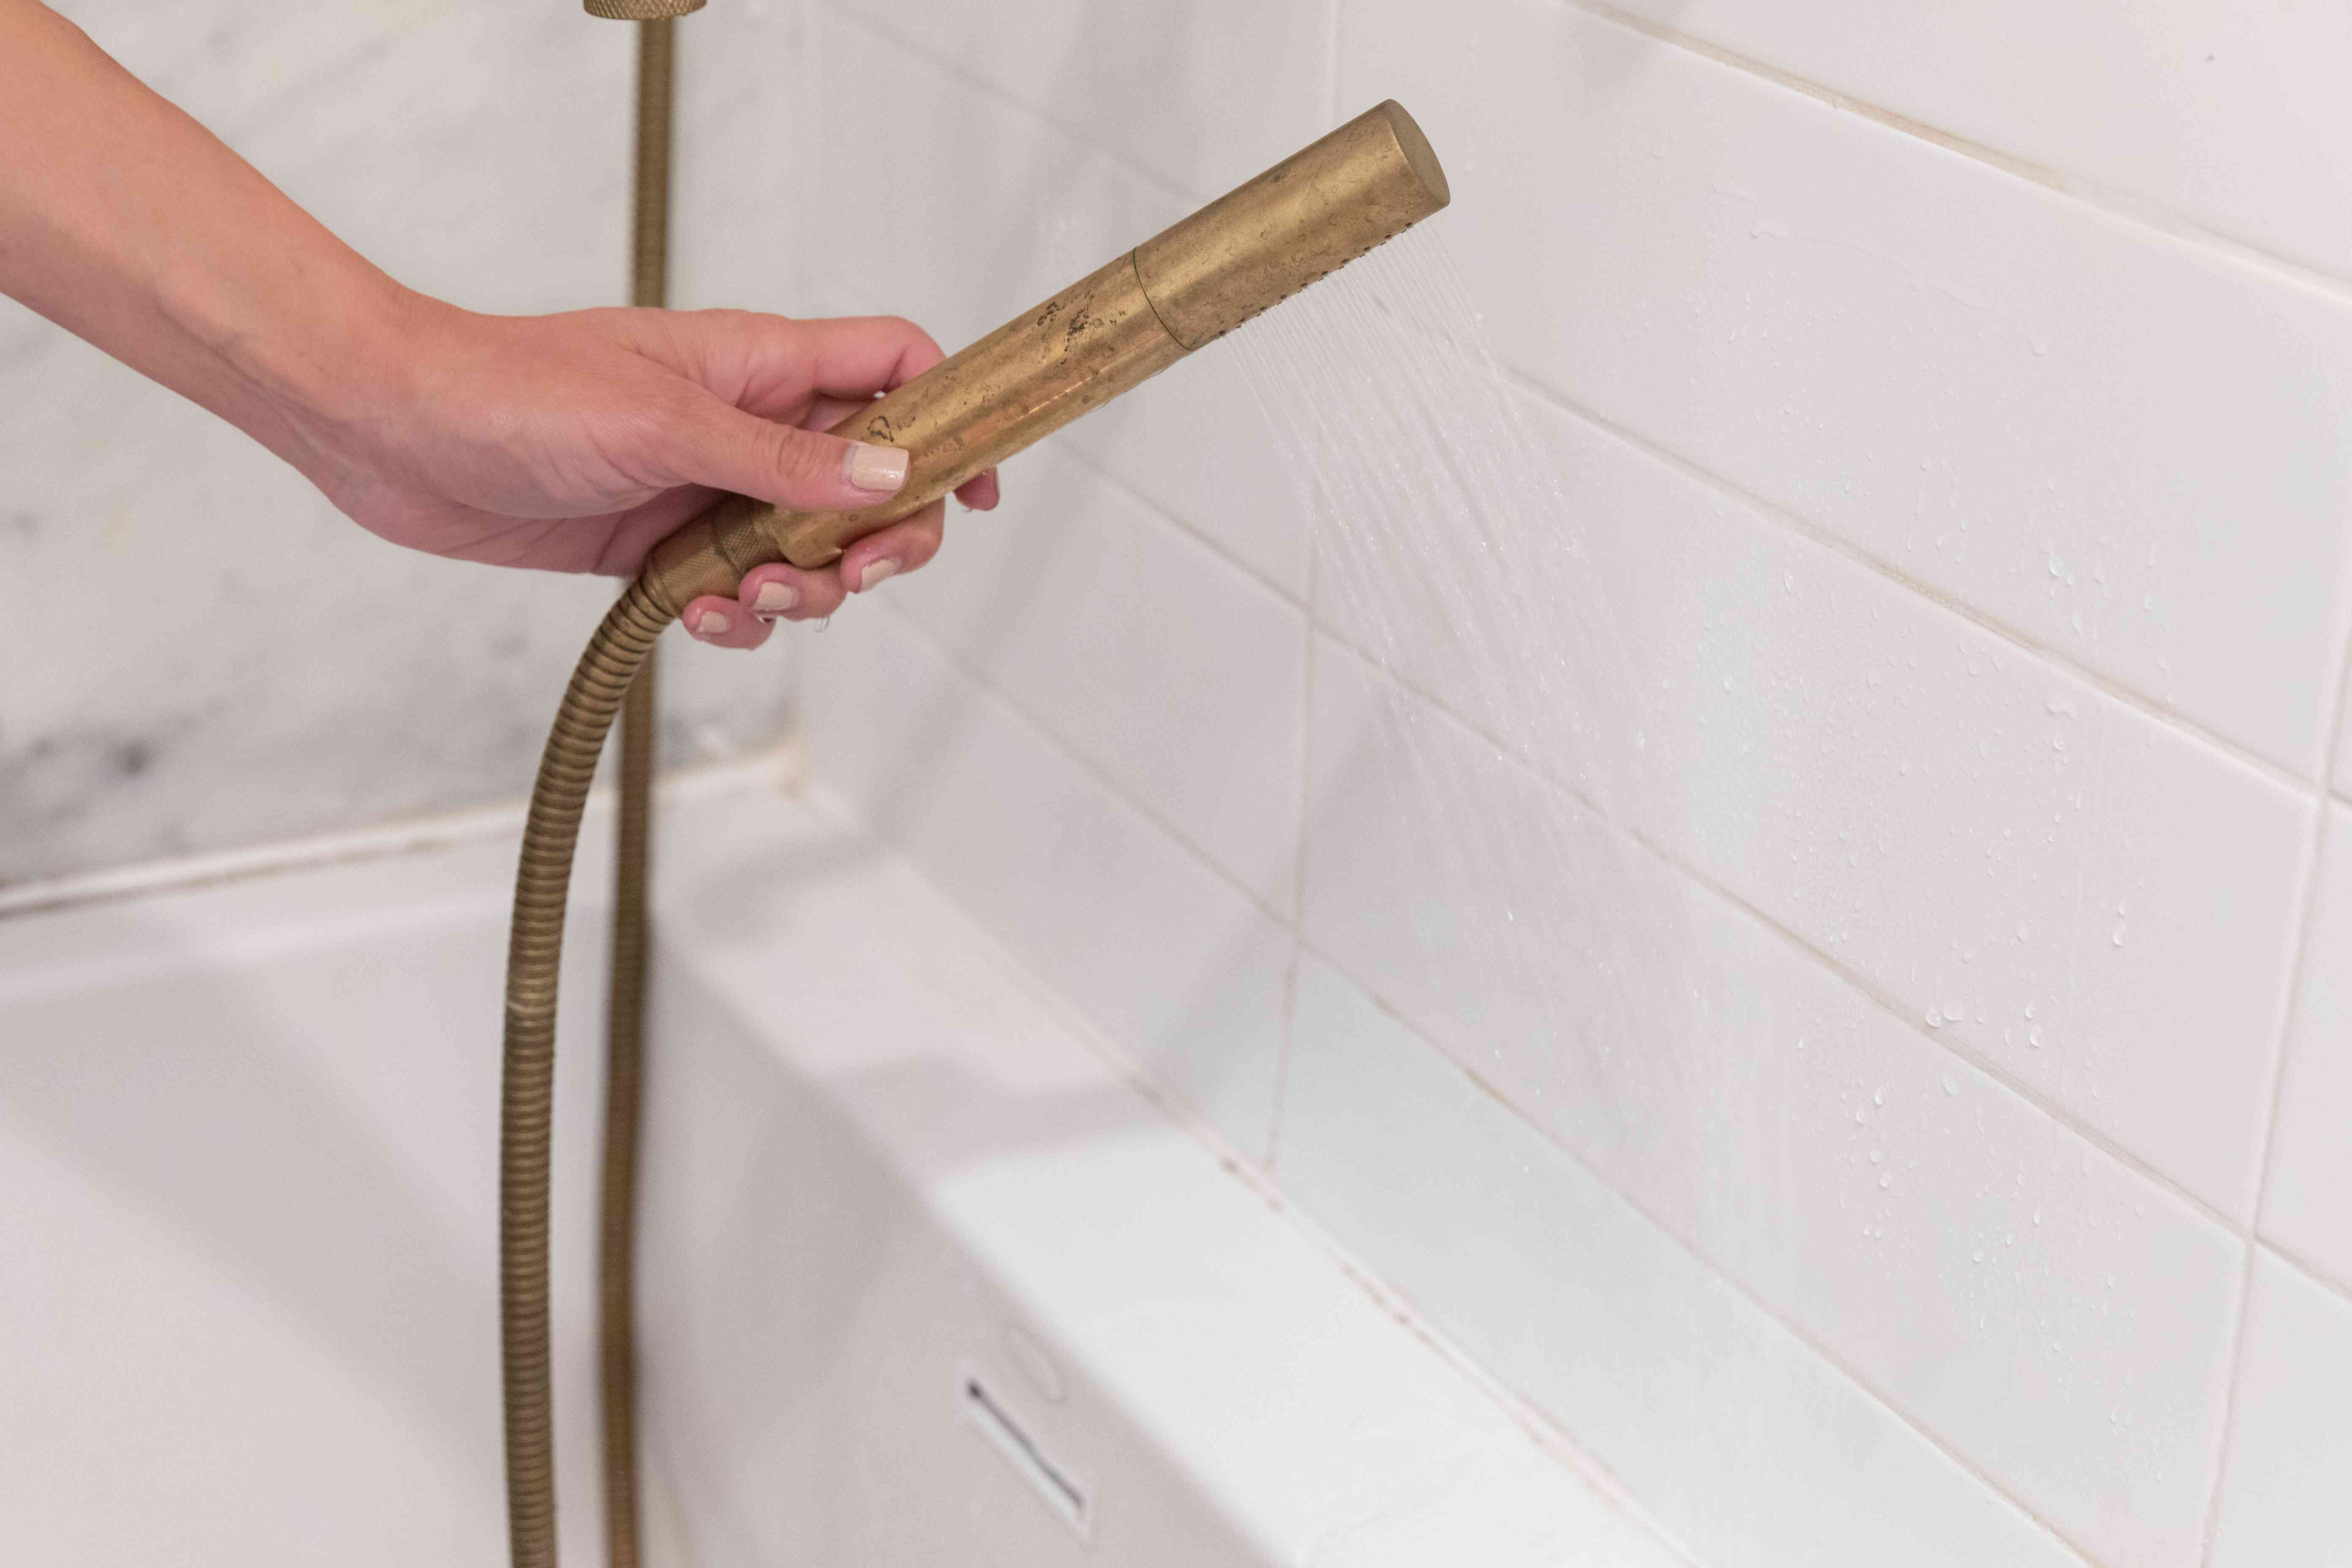 White bathroom wall being rinsed with brass shower hose after scrubbing pink mold